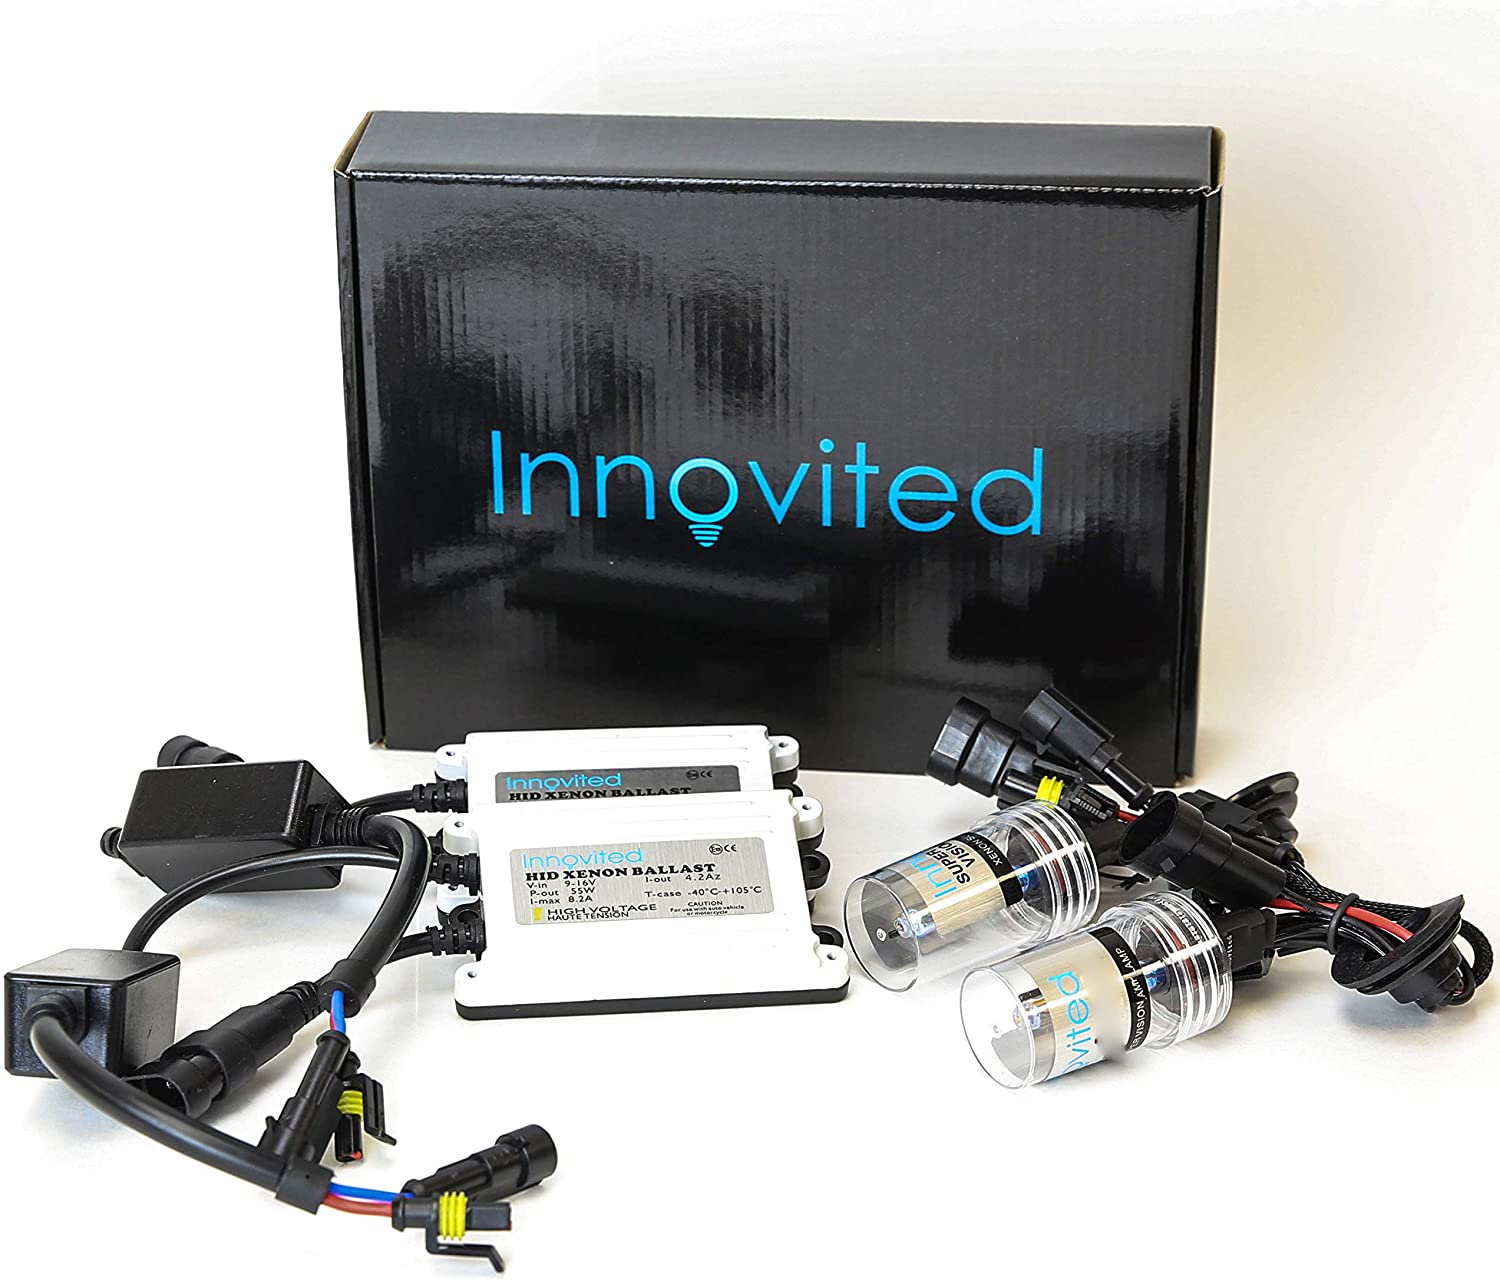 Innovited 55W AC HID bundle with 1 Limited price sale and Pa Pair Slim Long-awaited Ballast